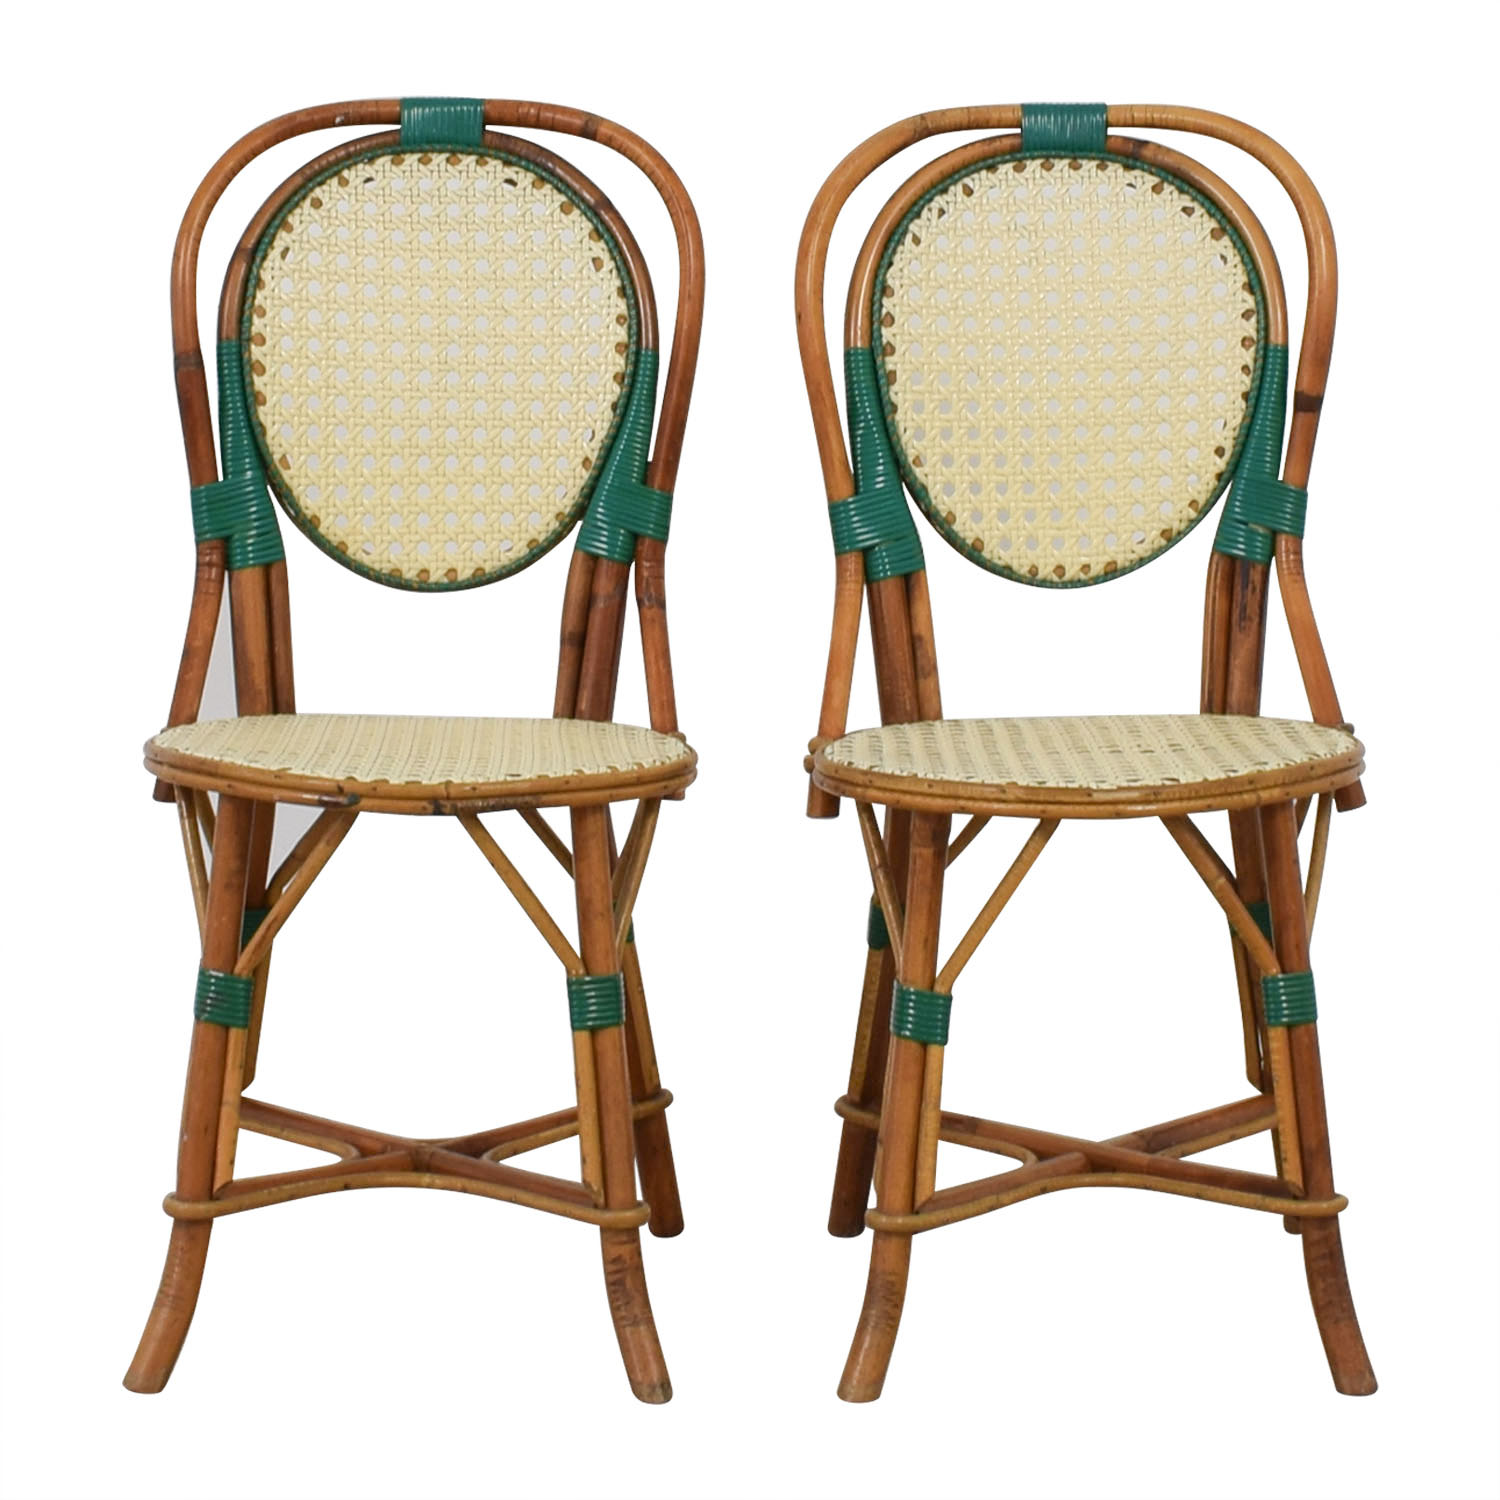 Outdoor French Bistro Chairs 68 Off Genuine Vintage Cane French Bistro Chairs Chairs